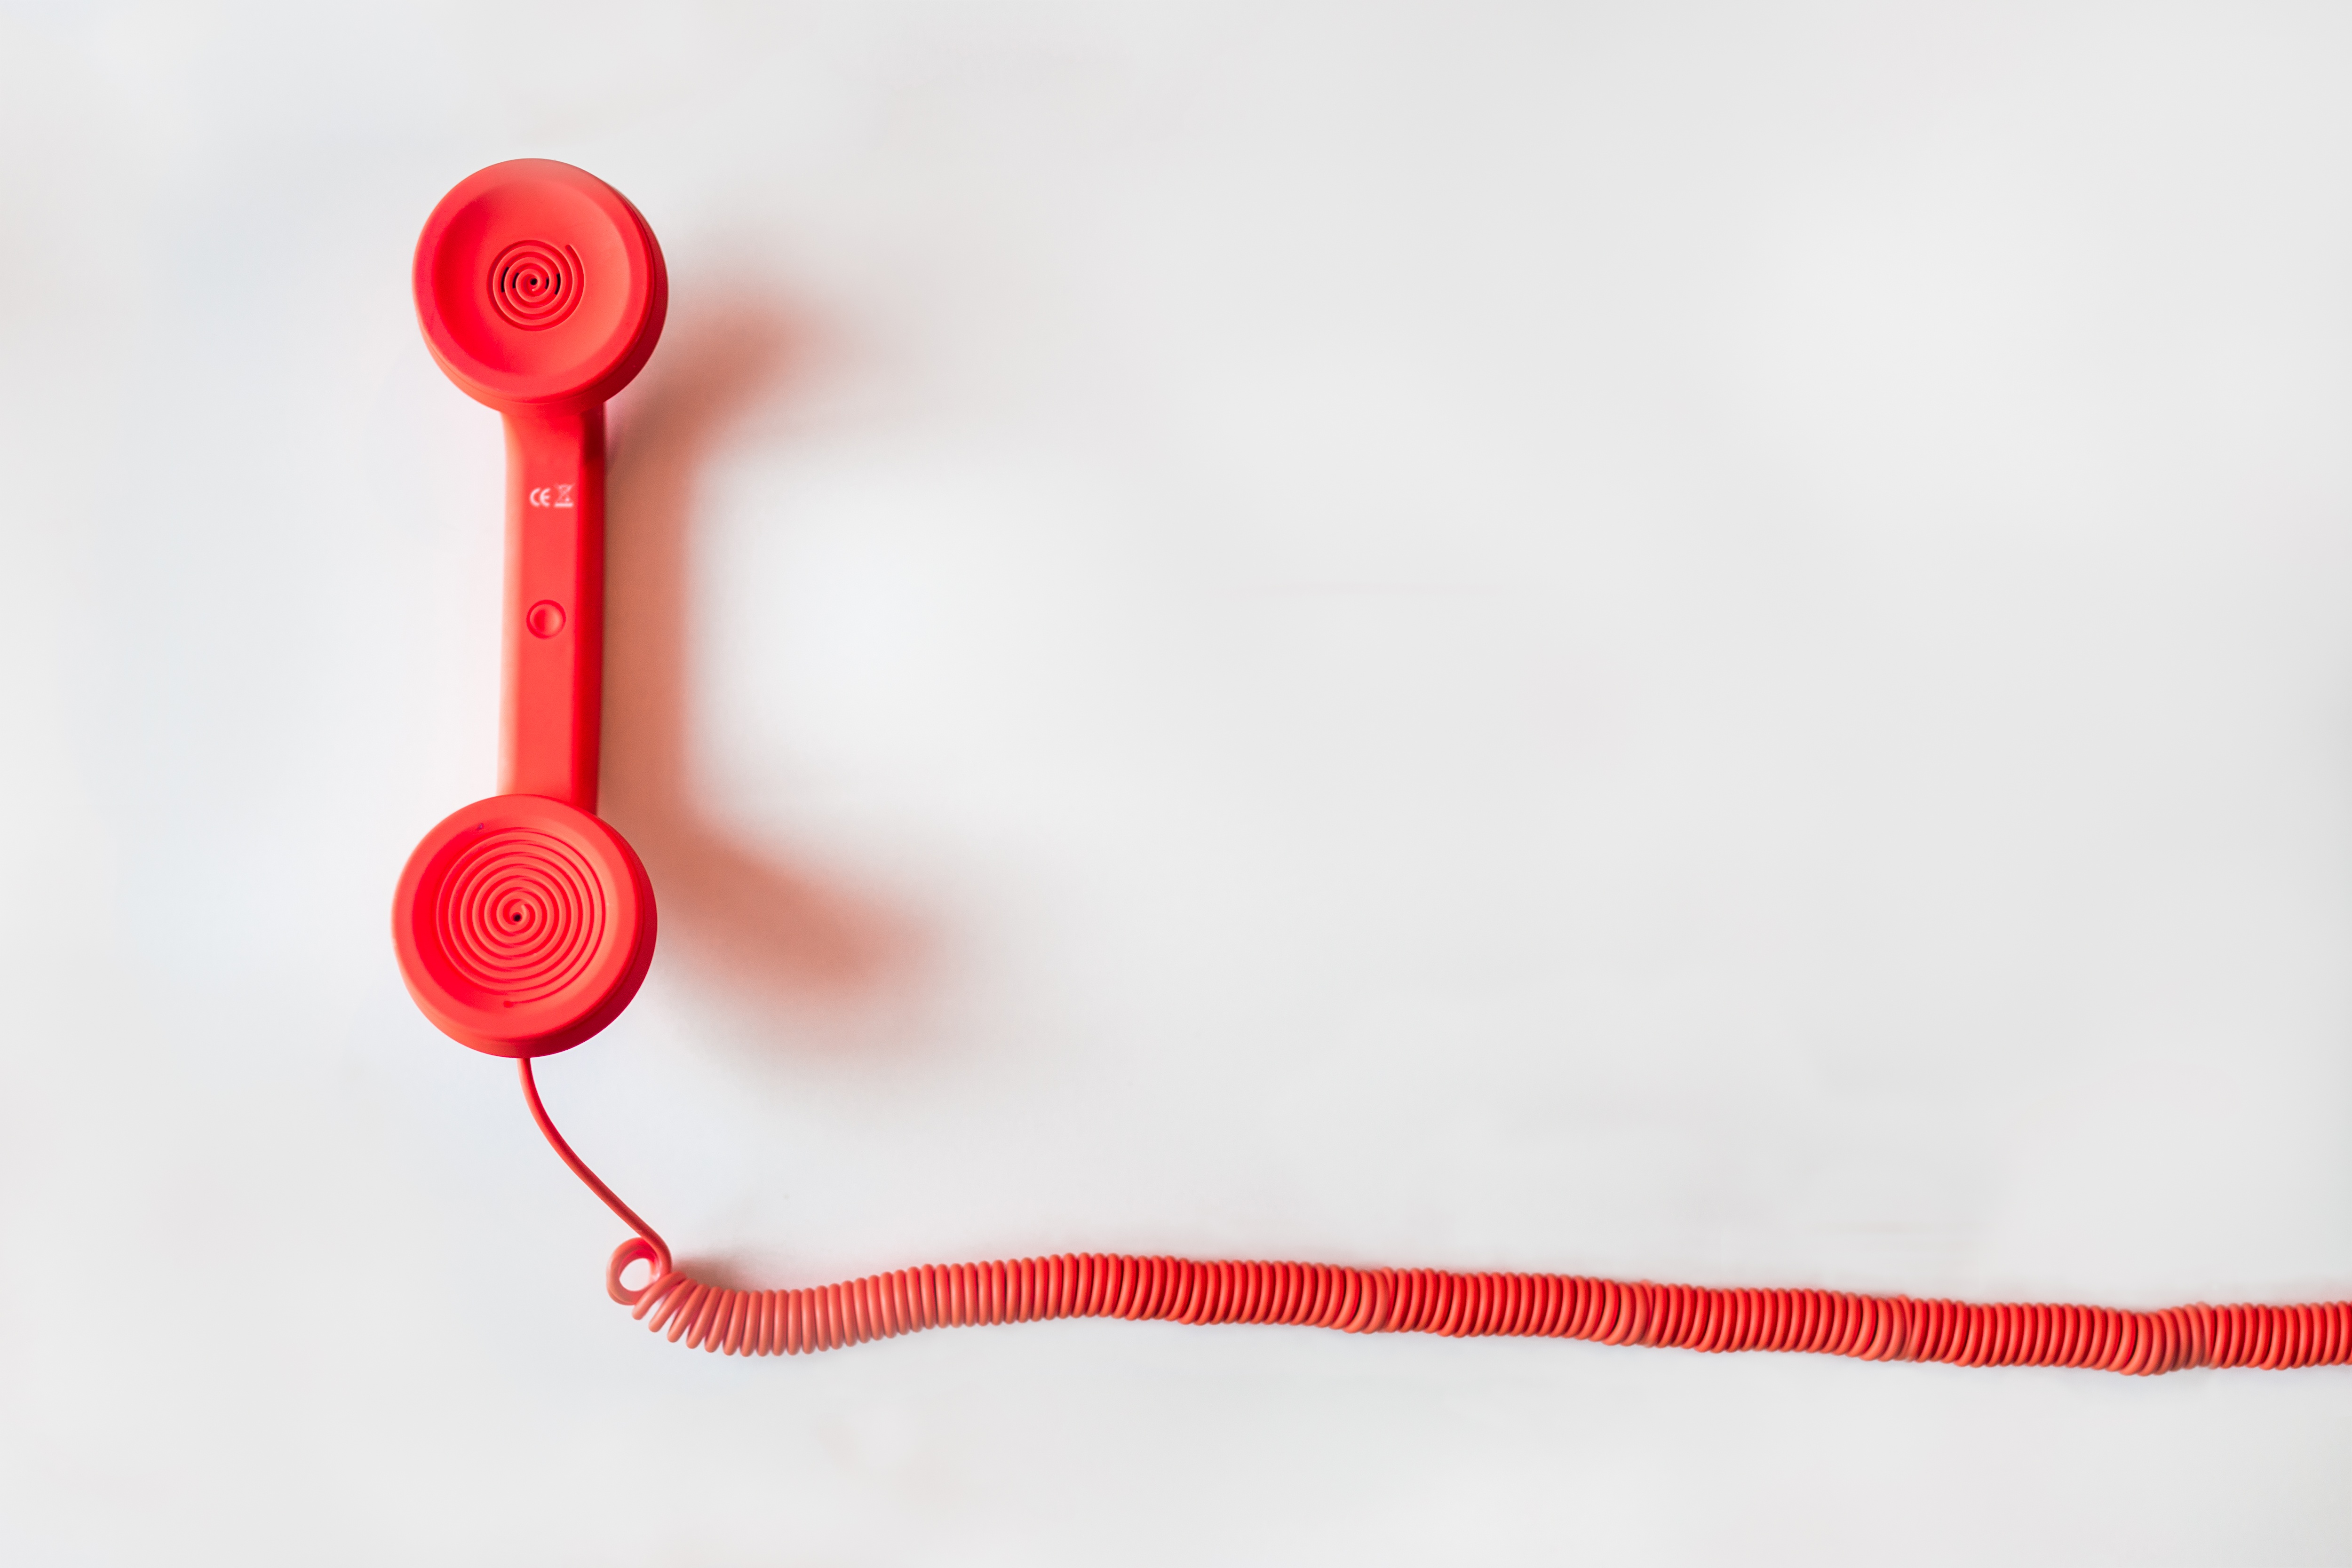 Red telephone with wire